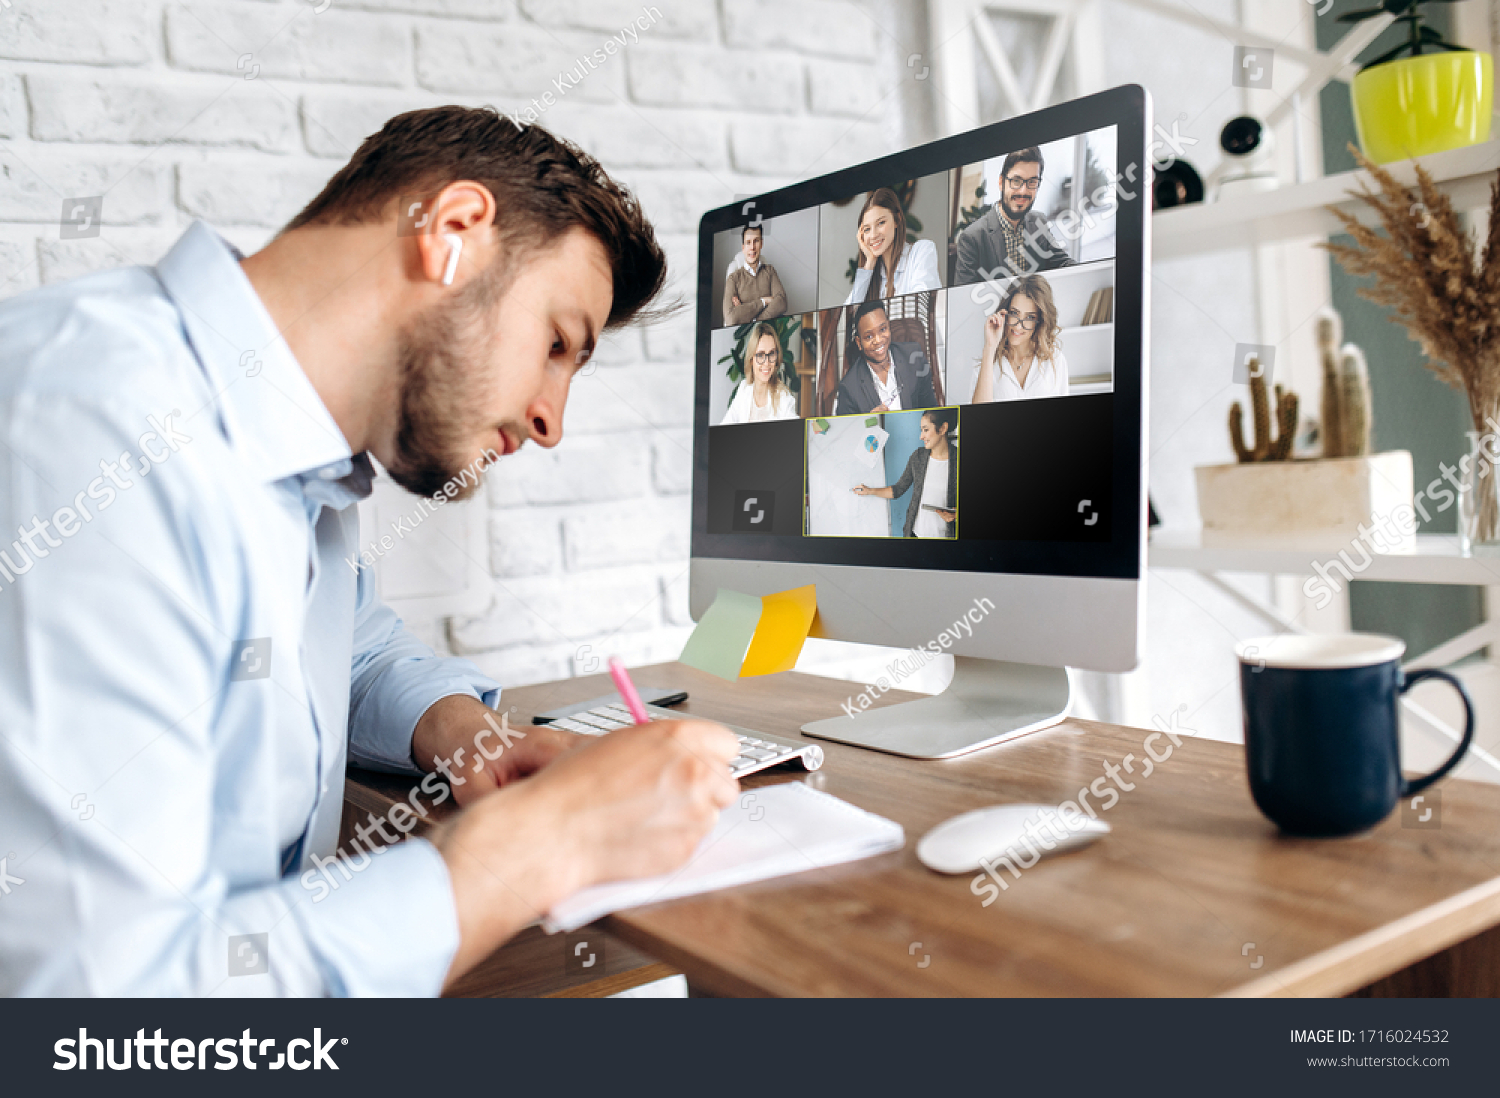 Online training. Young guy learns online by video conference in zoom app. On the screen, the teacher tells the information to him and other participants in the conference #1716024532